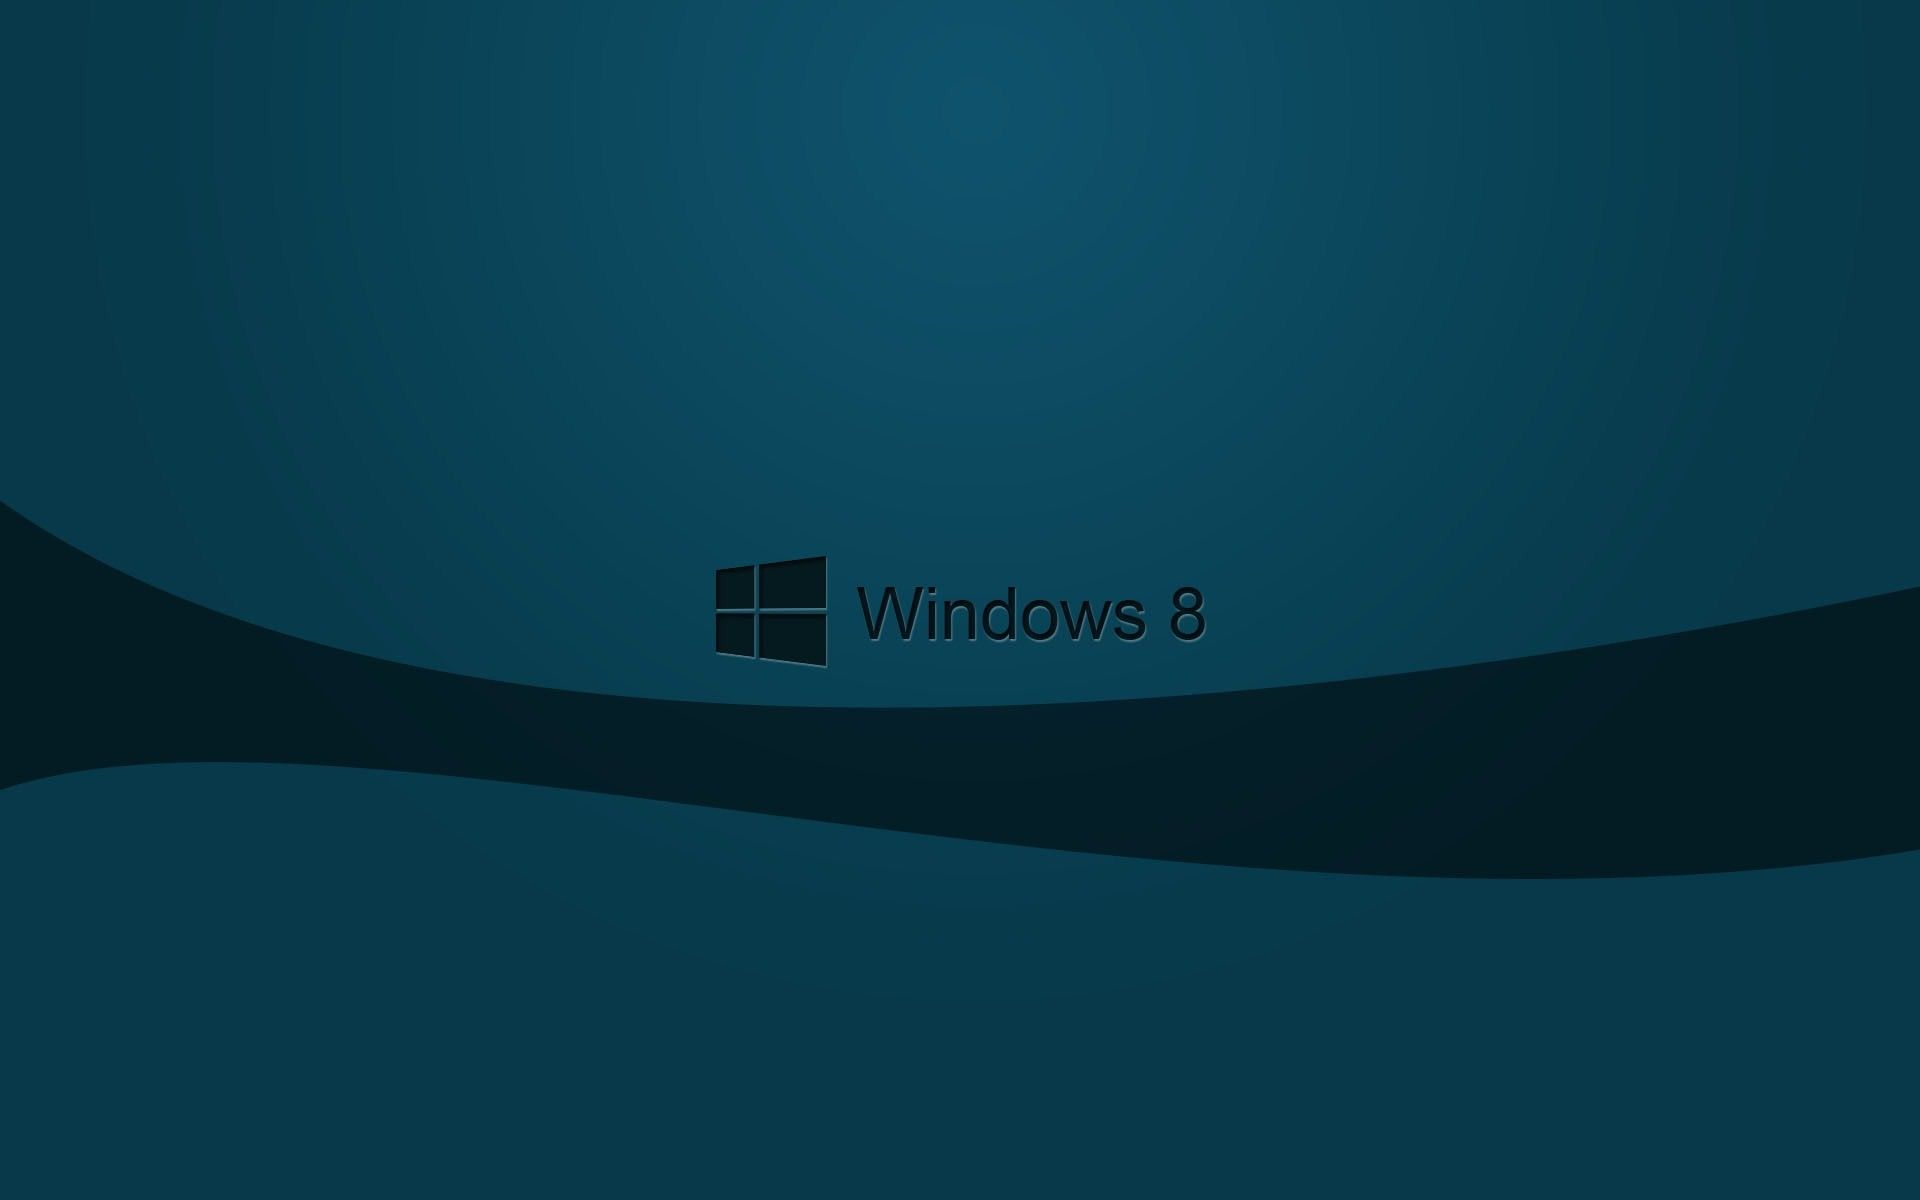 windows 8 desktop hd wallpaper Windows HD Wallpapers